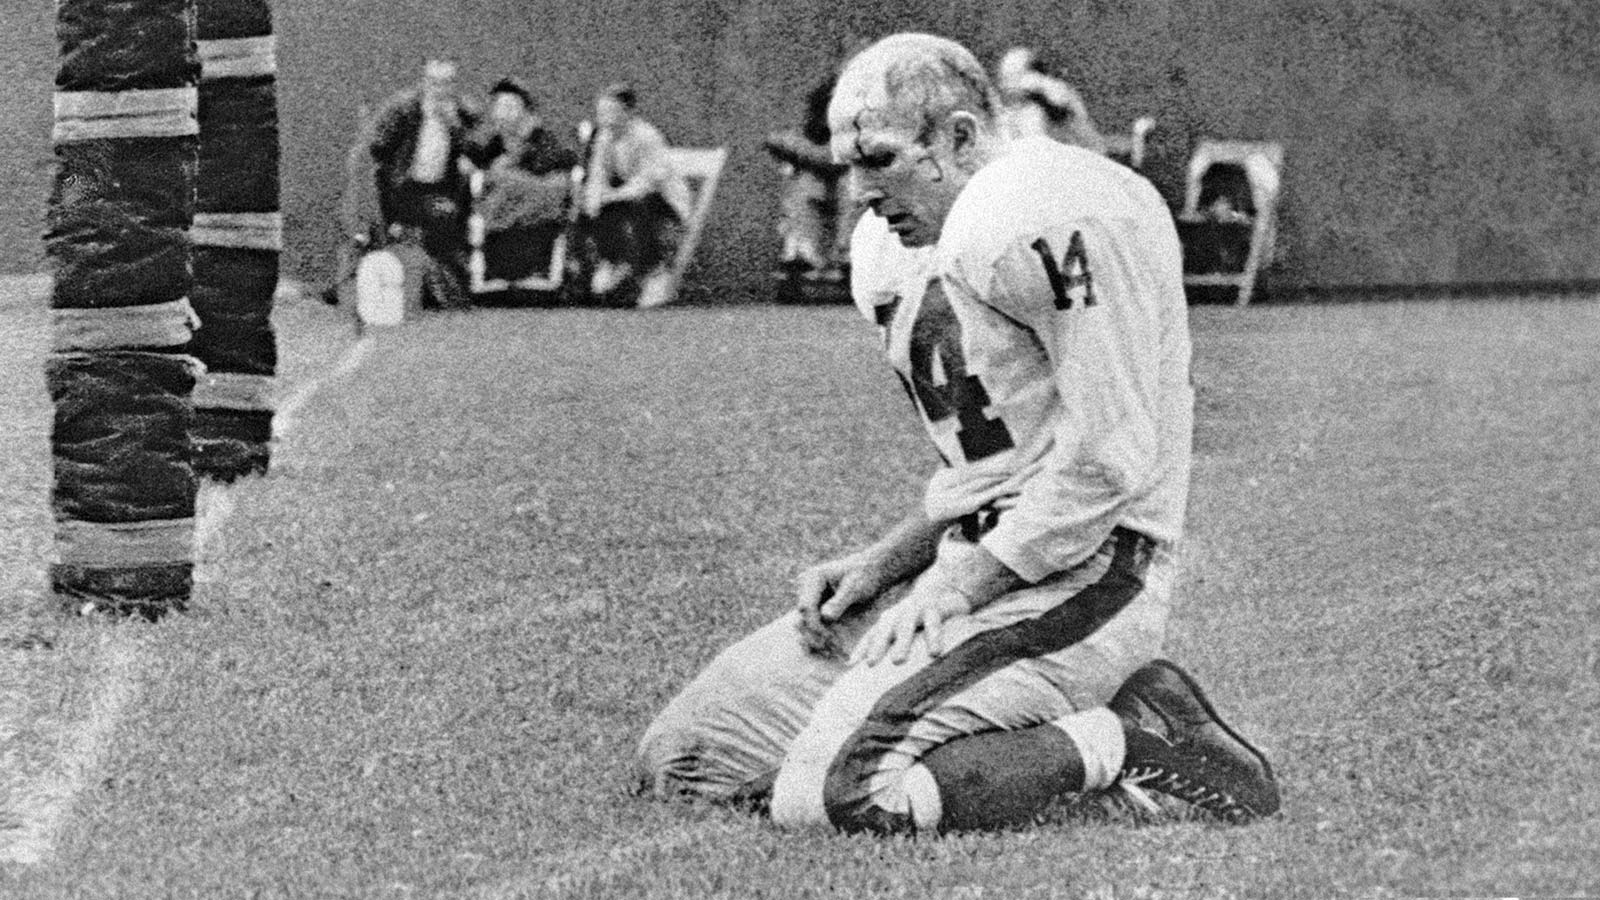 Pro Football Hall of Fame QB YA Tittle dies at 90